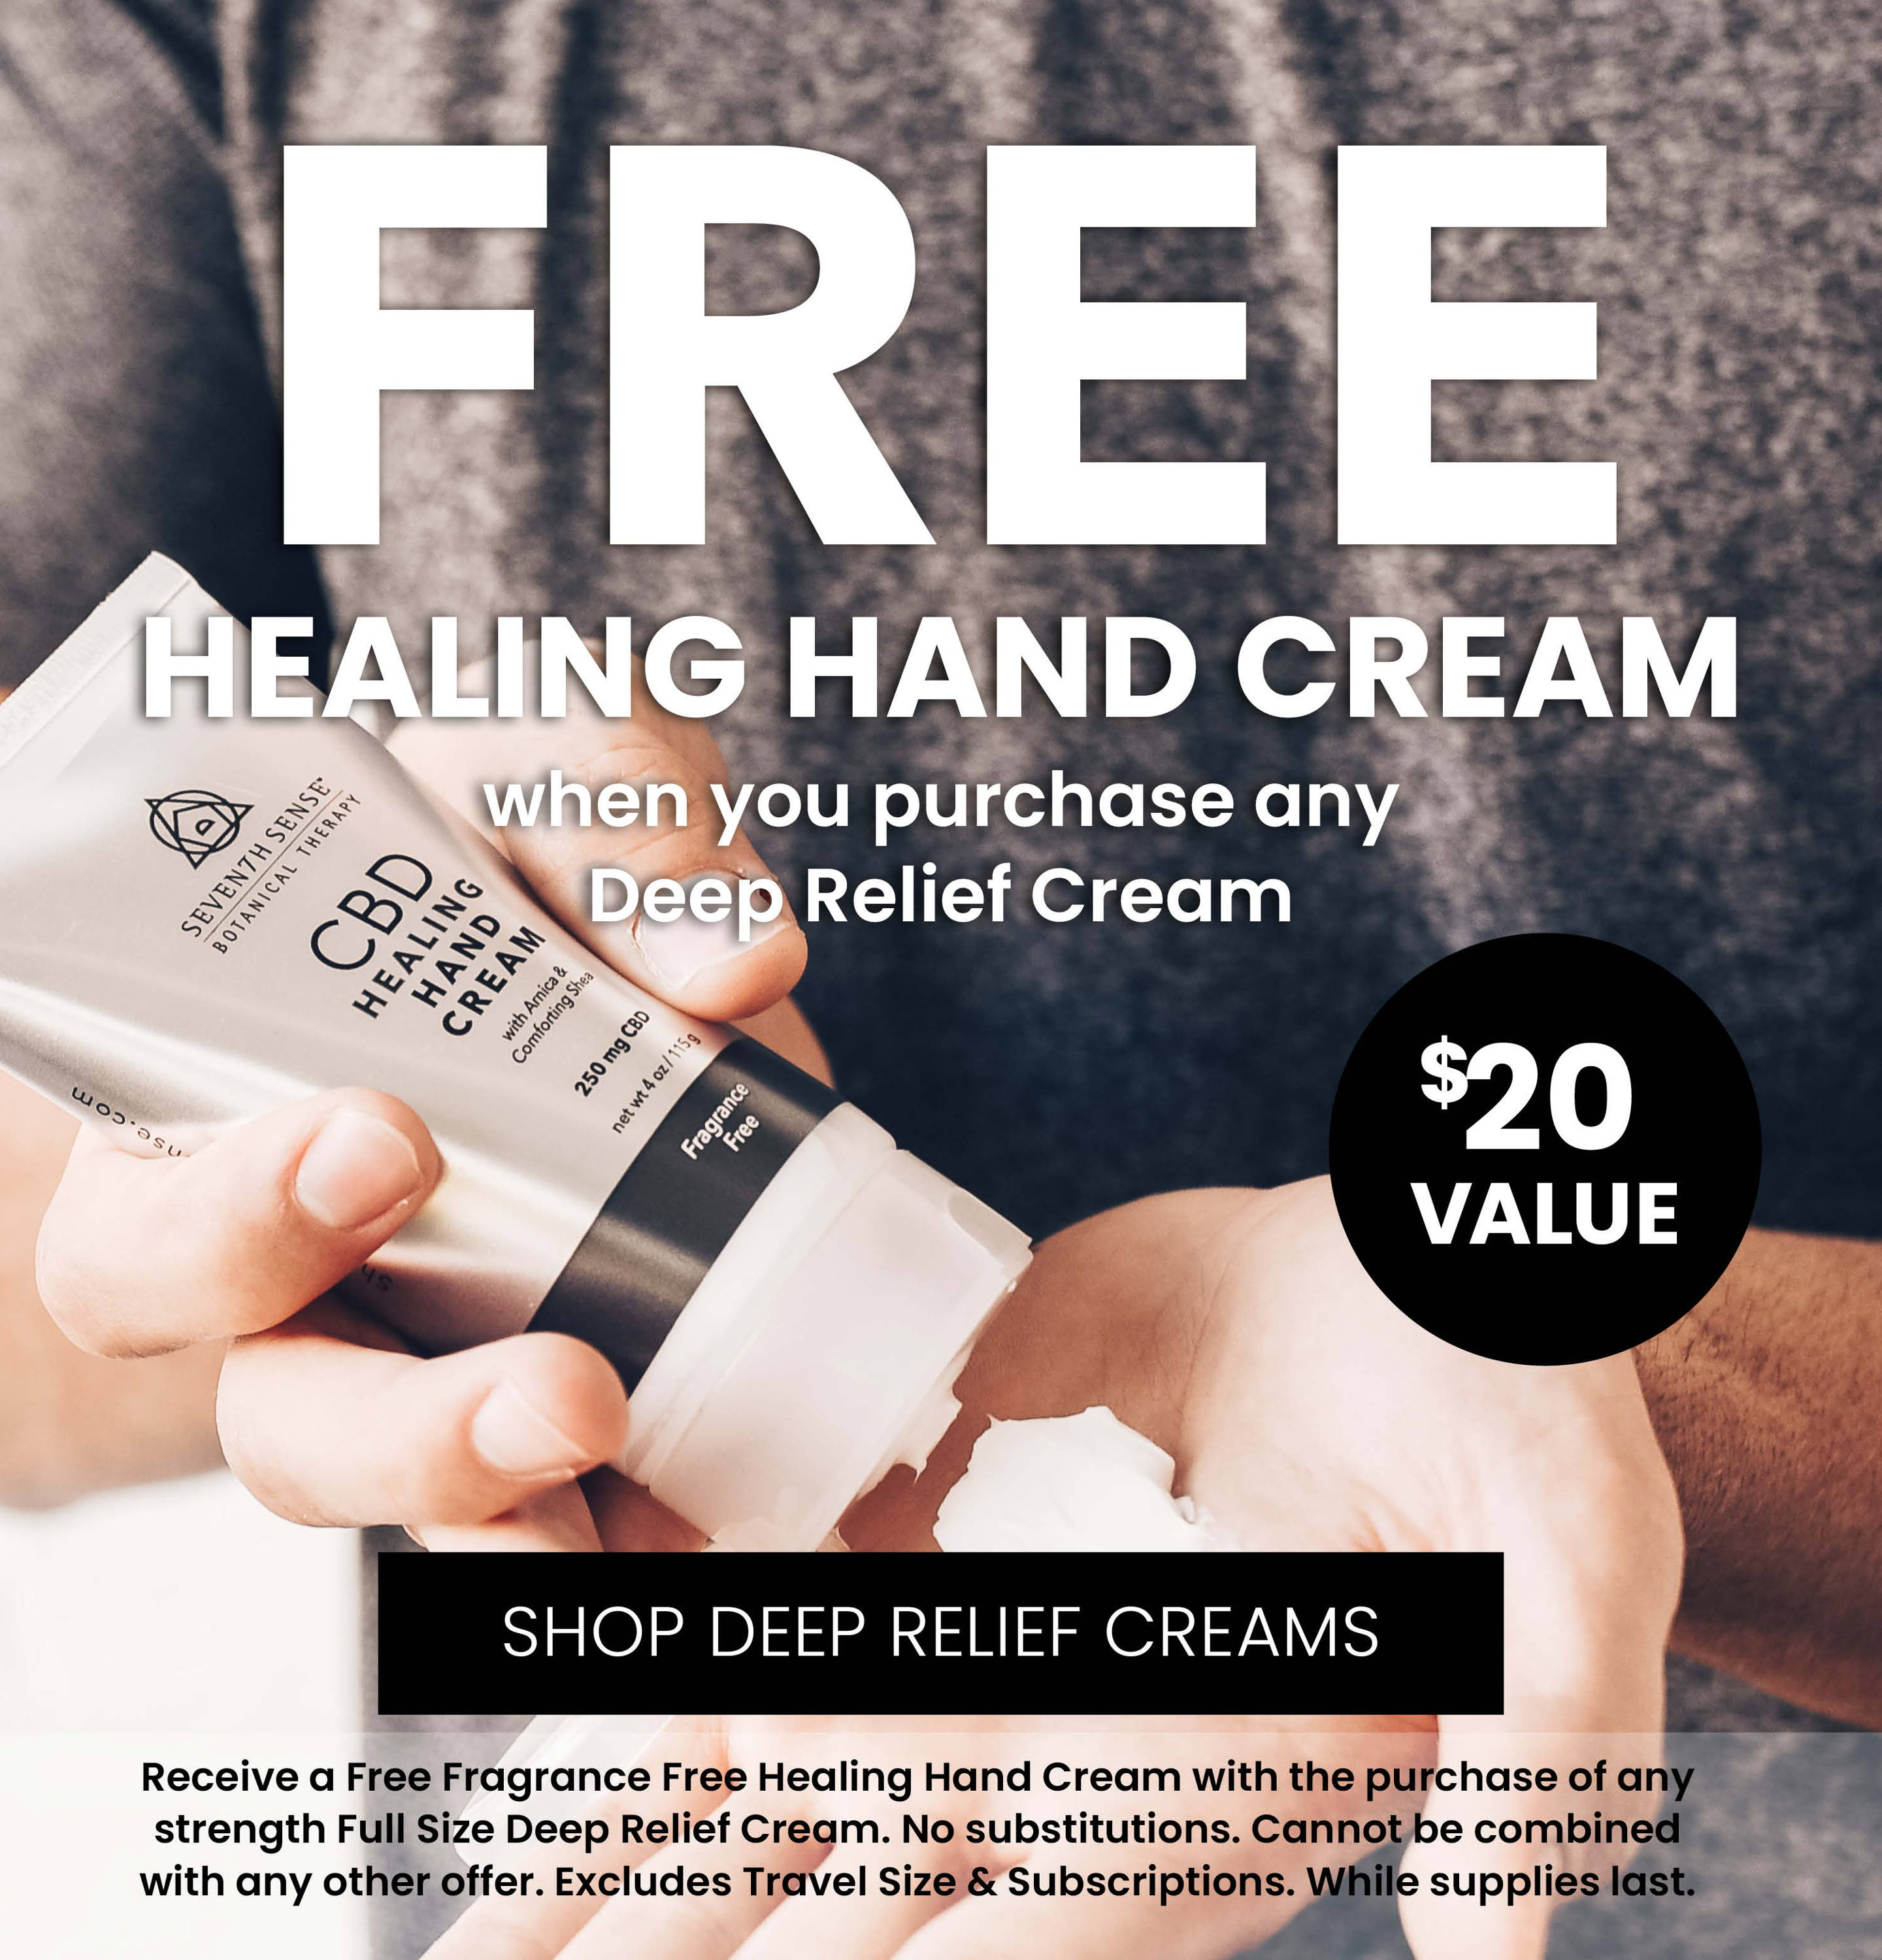 Receive a Free Fragrance Free Healing Hand Cream with the purchase of any strength Full Size Deep Relief Cream. No substitutions. Cannot be combined with any other offer. Excludes Travel Size & Subscriptions. While supplies last.